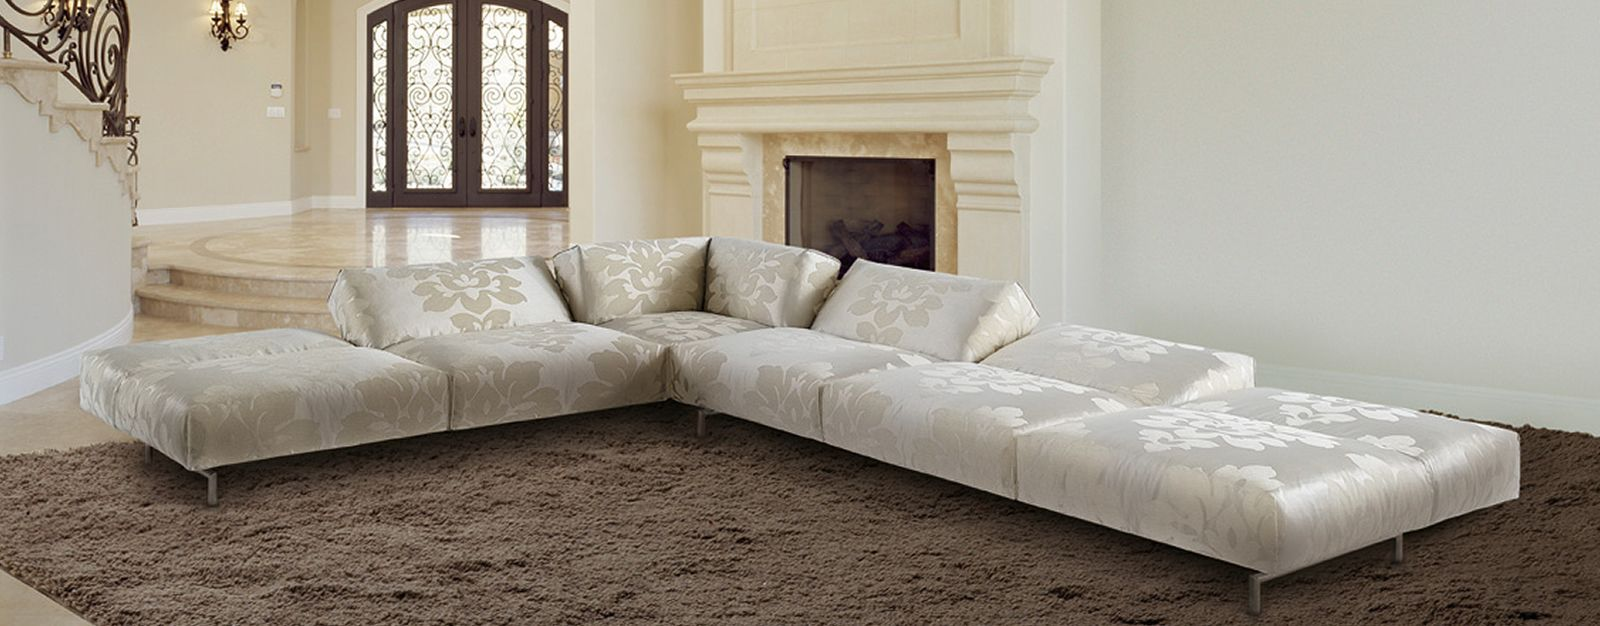 FUTURA ITALY #Furniture #innovation #Sofas, #armchairs, #beds .